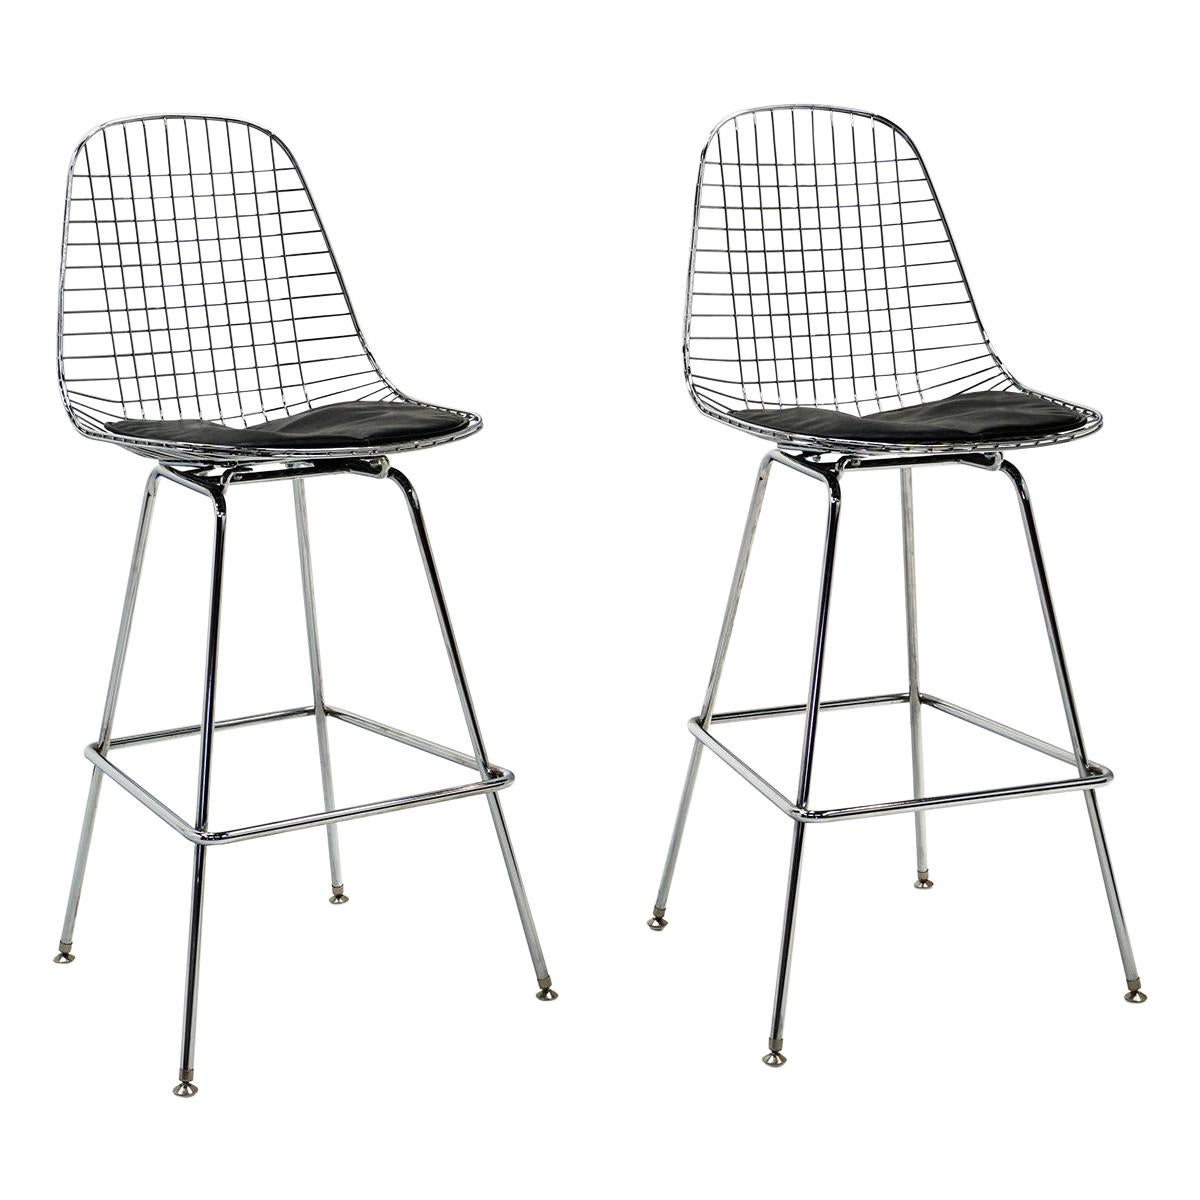 Pair of Wire Barstools by Charles and Ray Eames, Chrome with Black Leather Pads